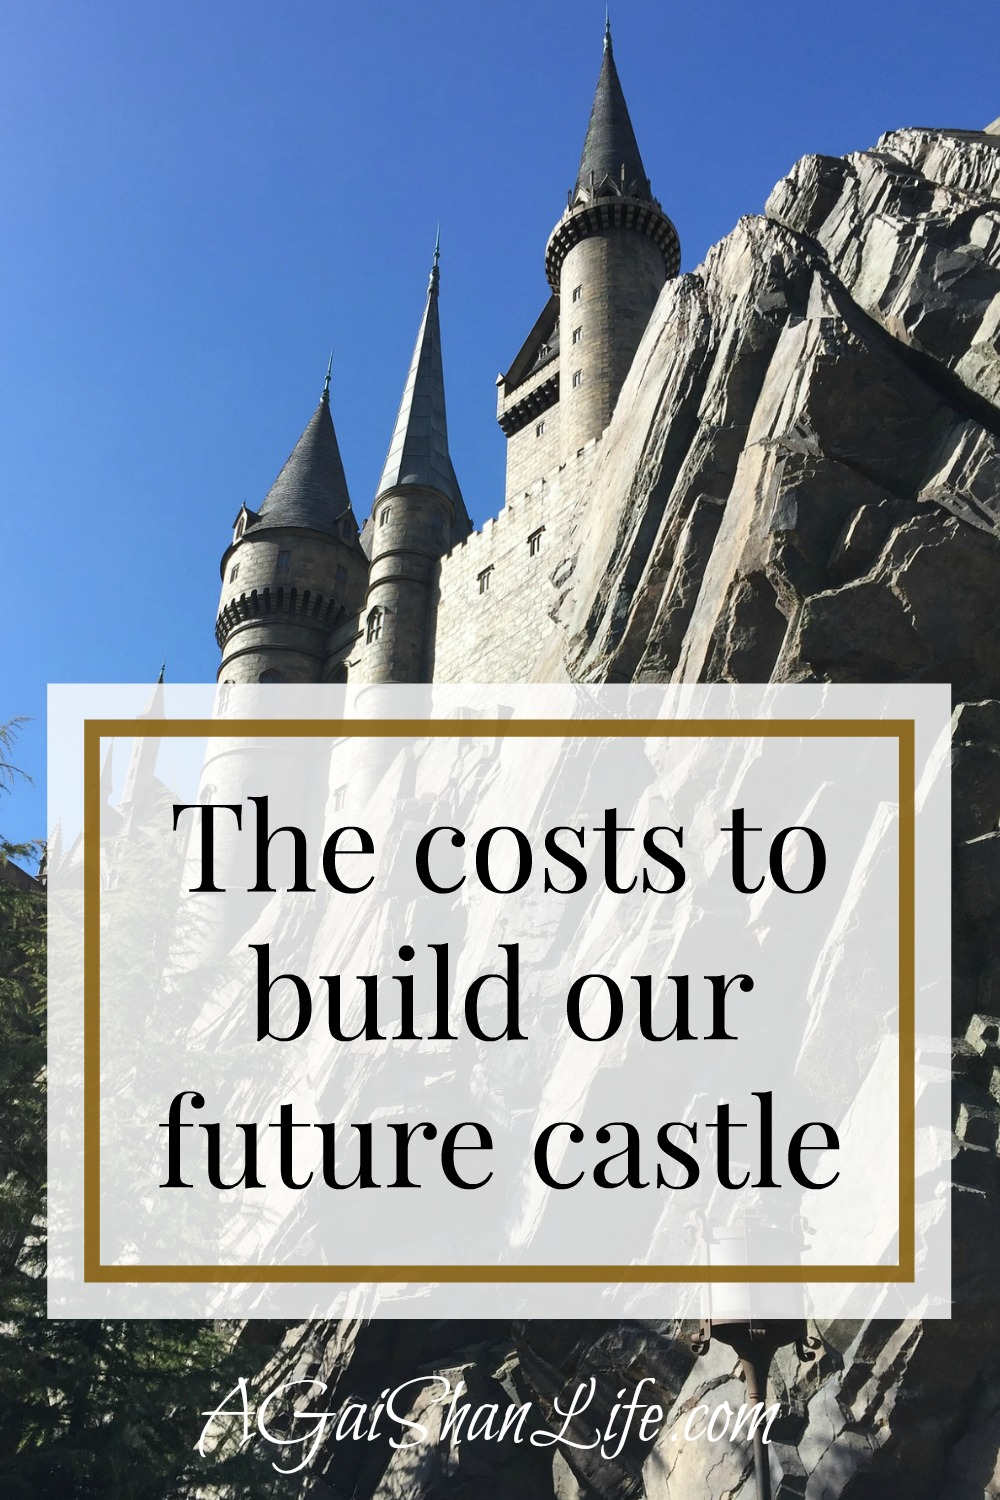 The costs to build our future castle (home!)